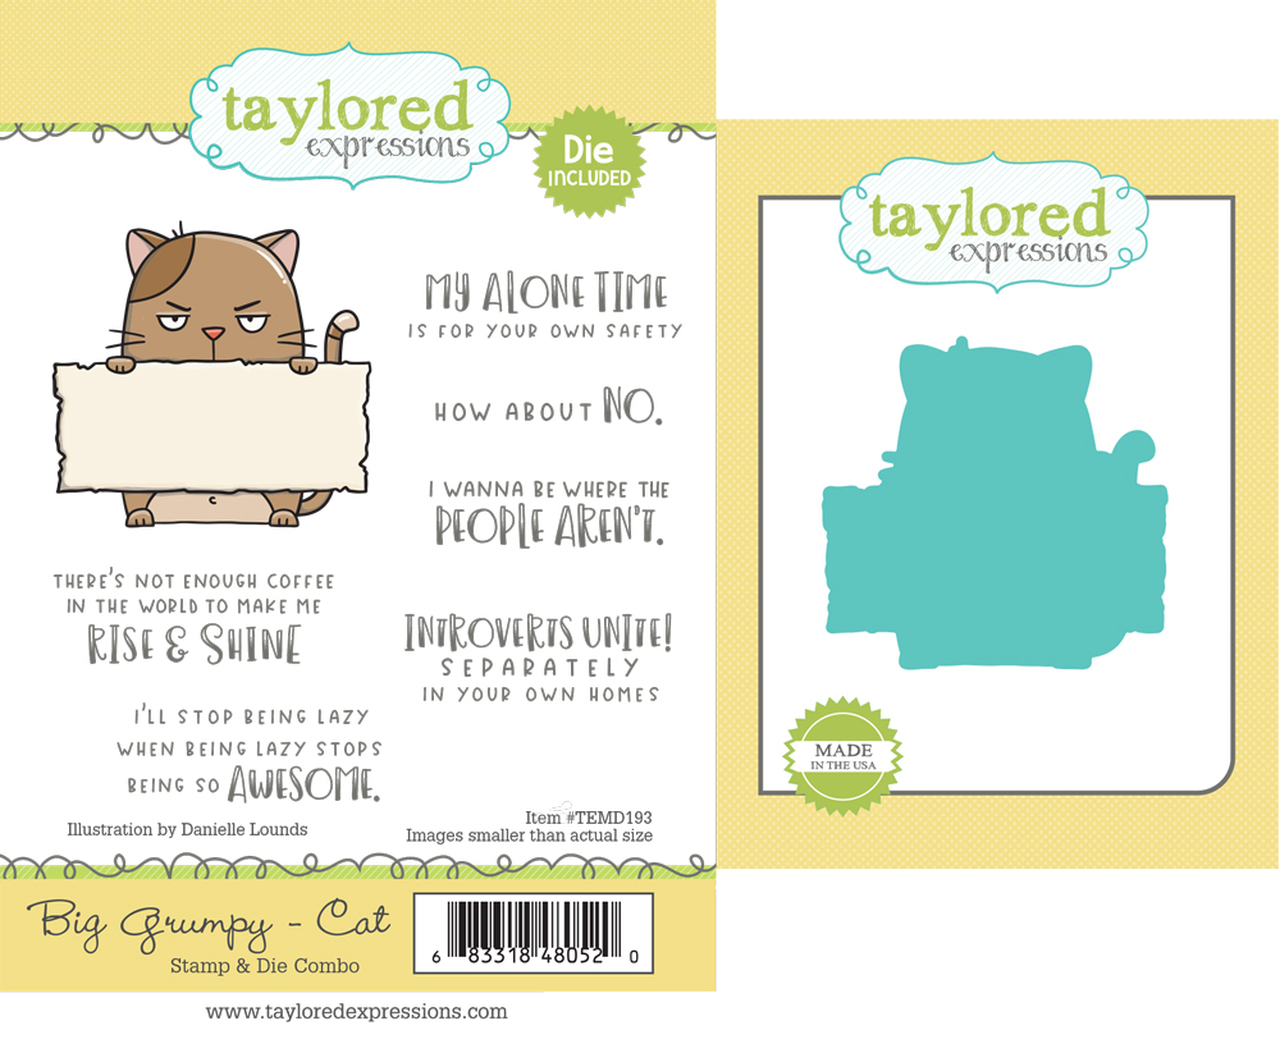 *NEW* - Taylored Expression - Big Grumpy - Cat Stamp & Die Combo